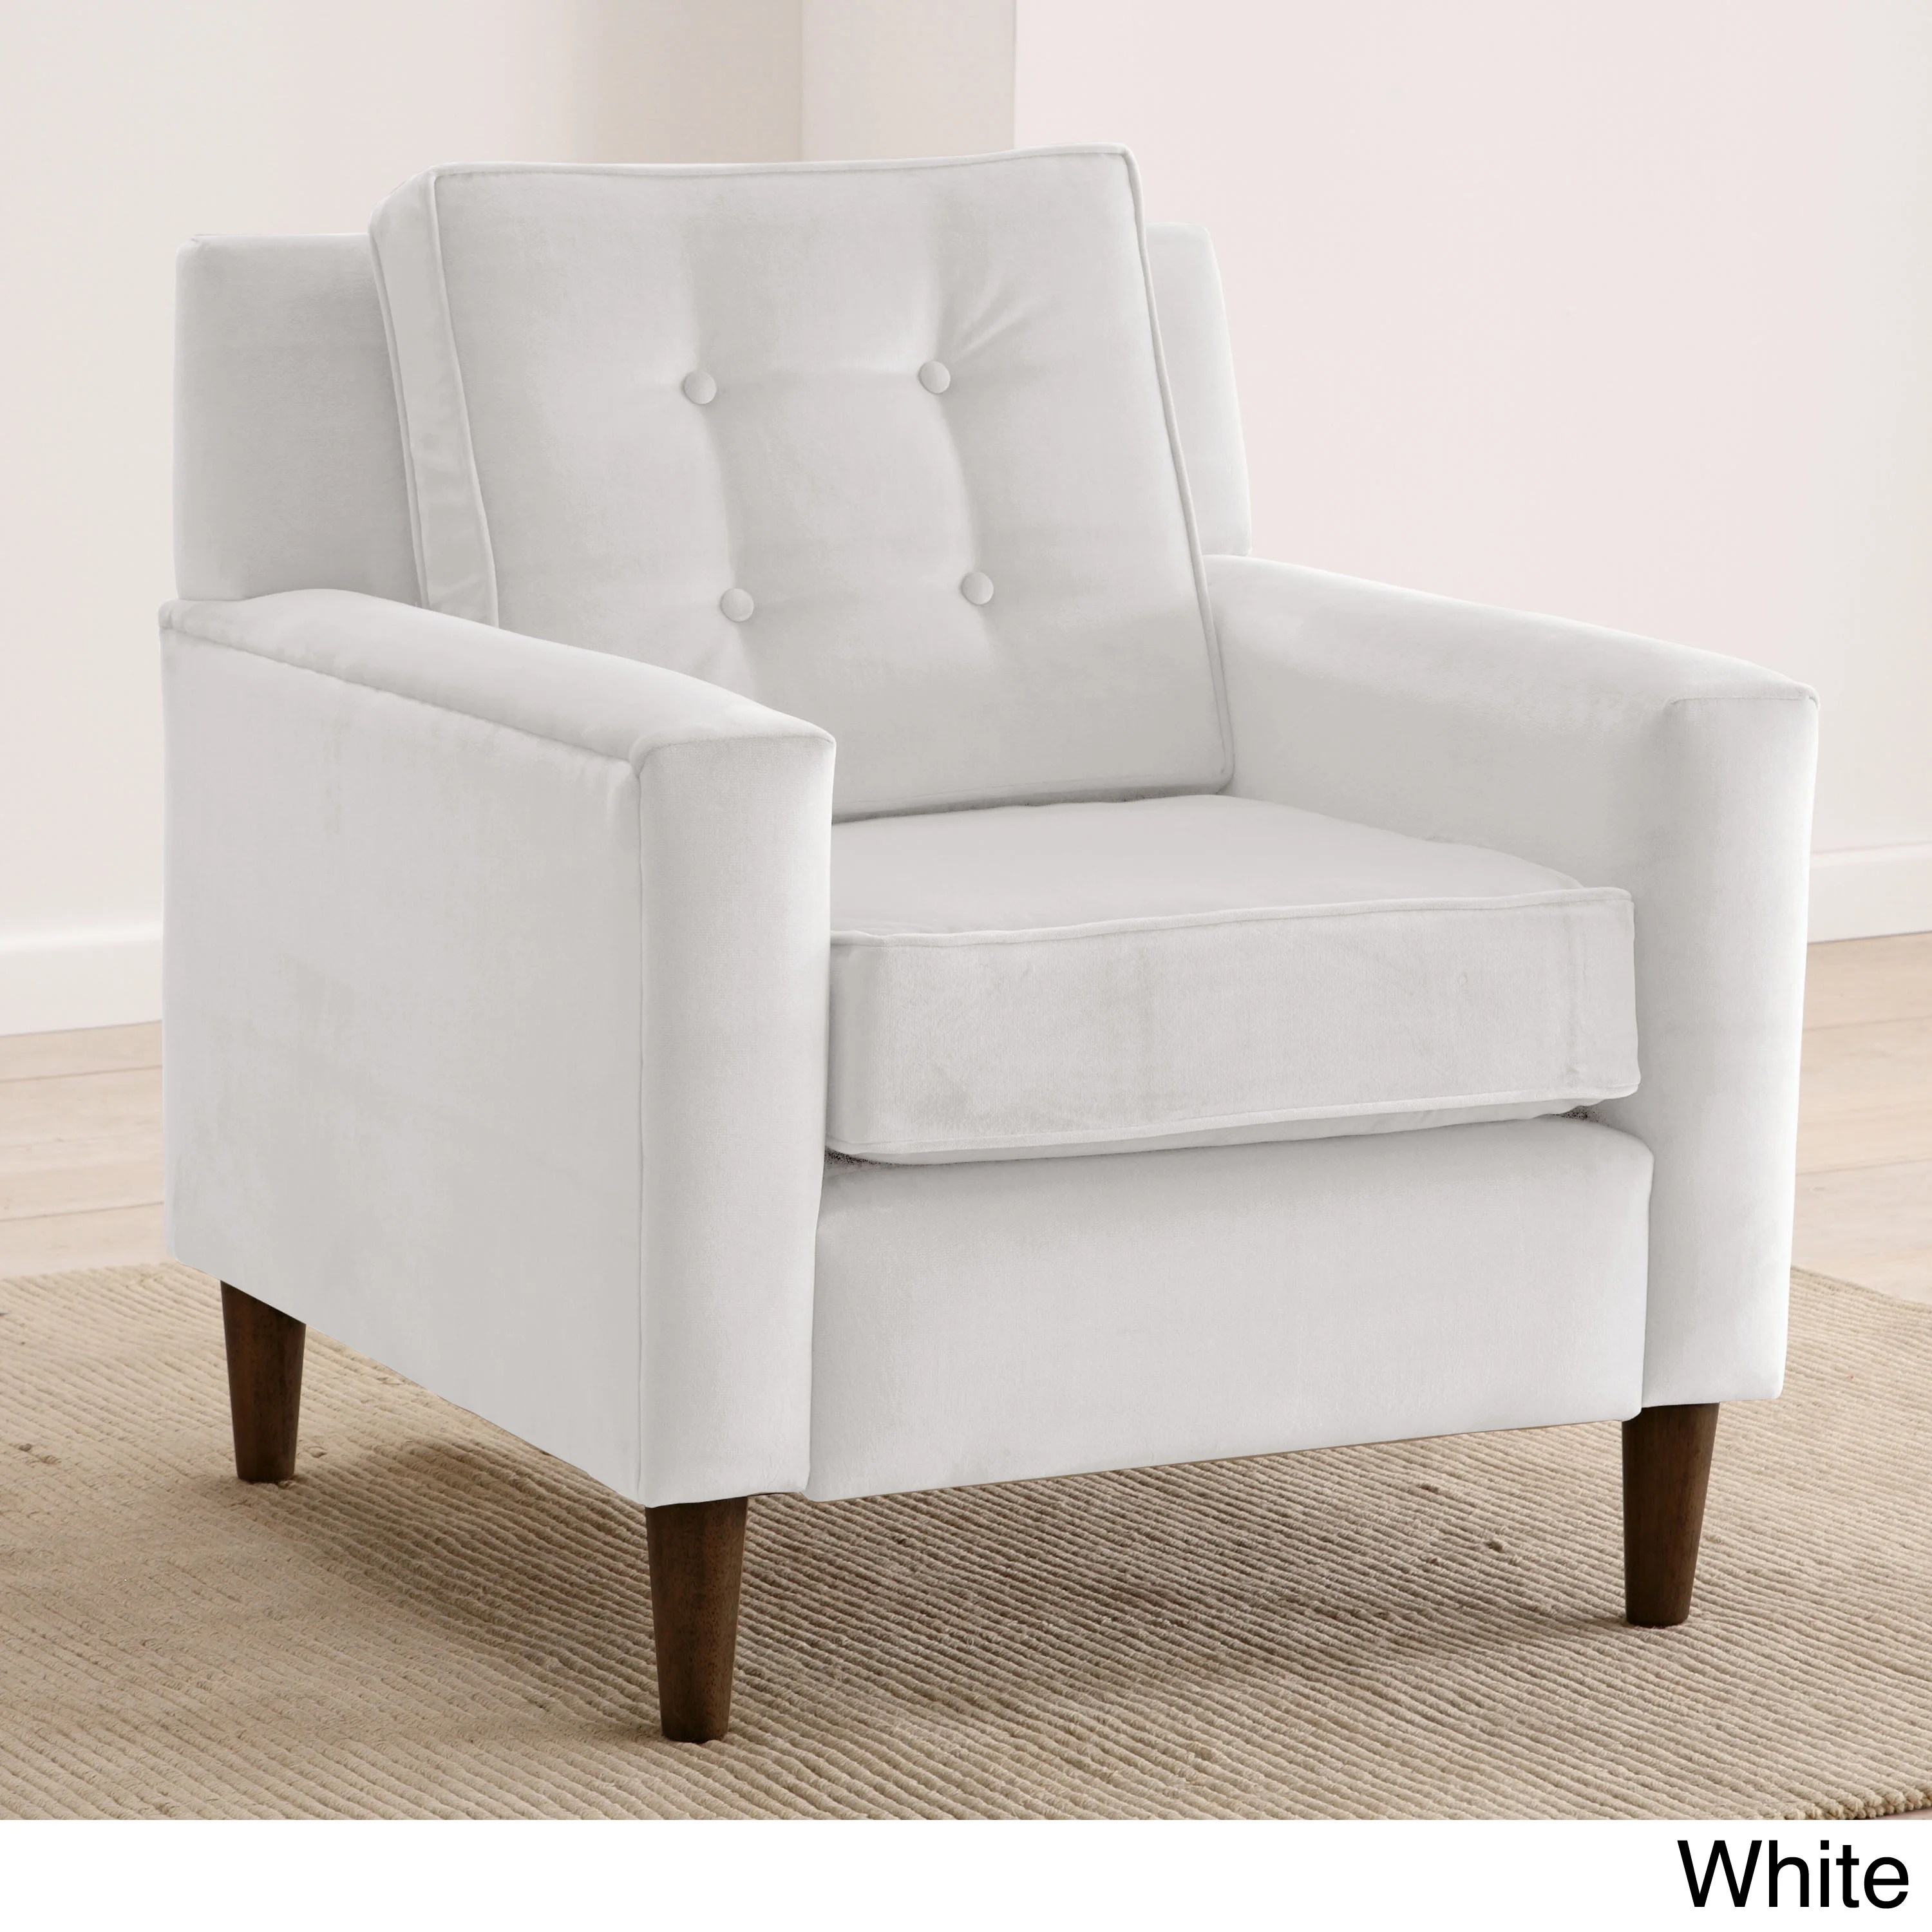 skyline furniture accent chairs white modern dining chair velvet upholstered tufted